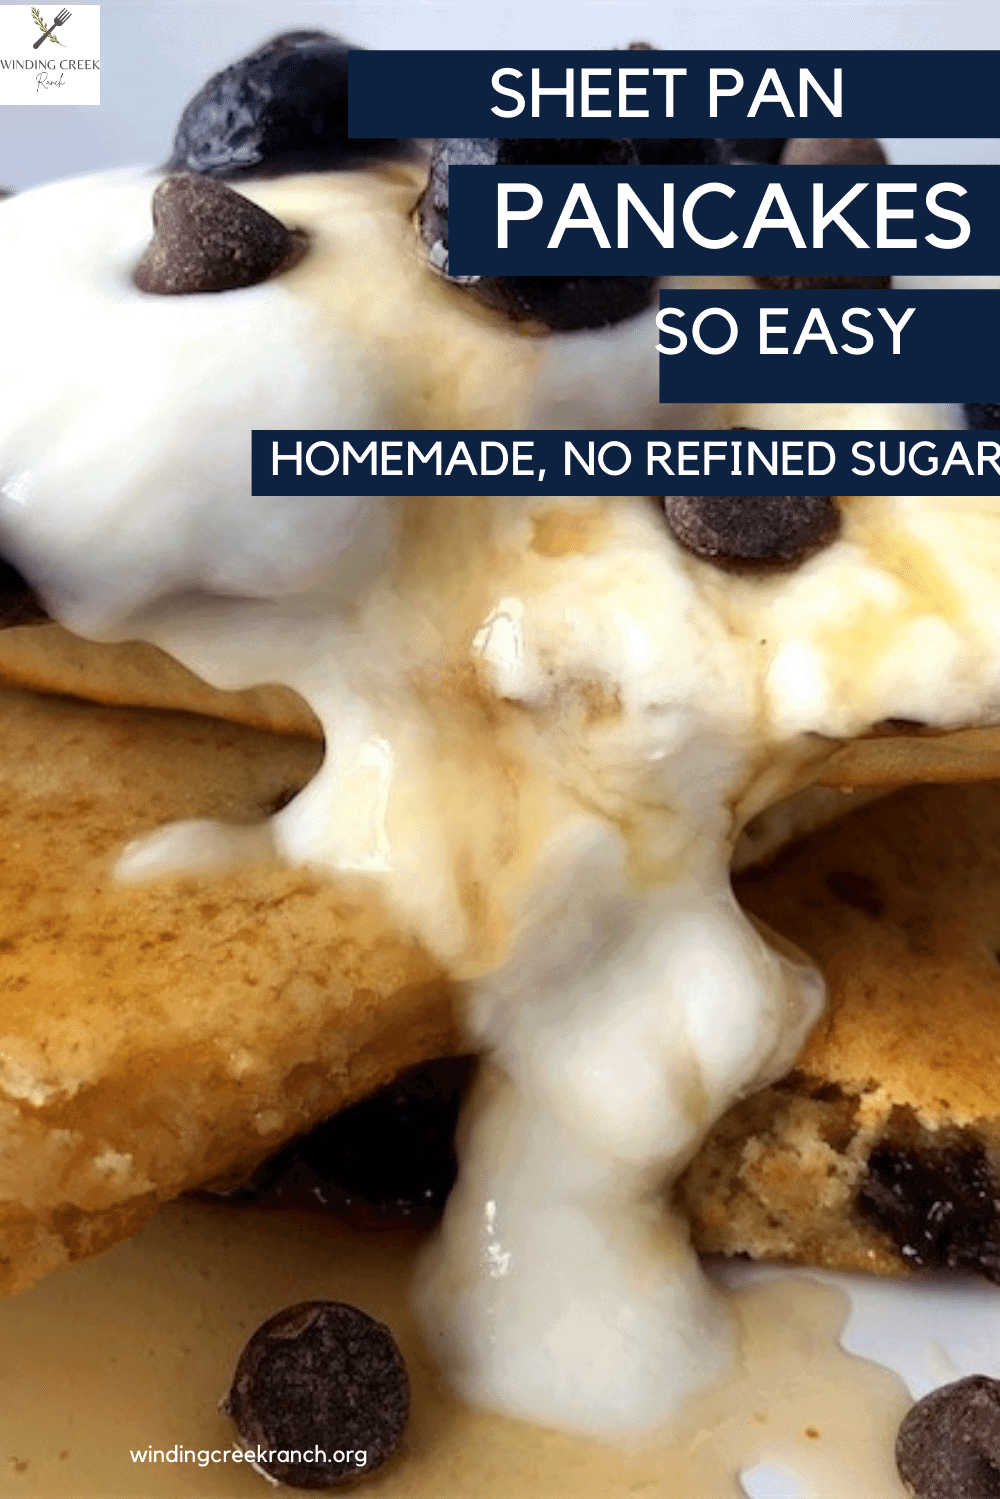 Light and fluffy baked sheet pan pancakes from scratch, no refined sugar, covered in whip cream, maple syrup, blueberries, and chocolate chips